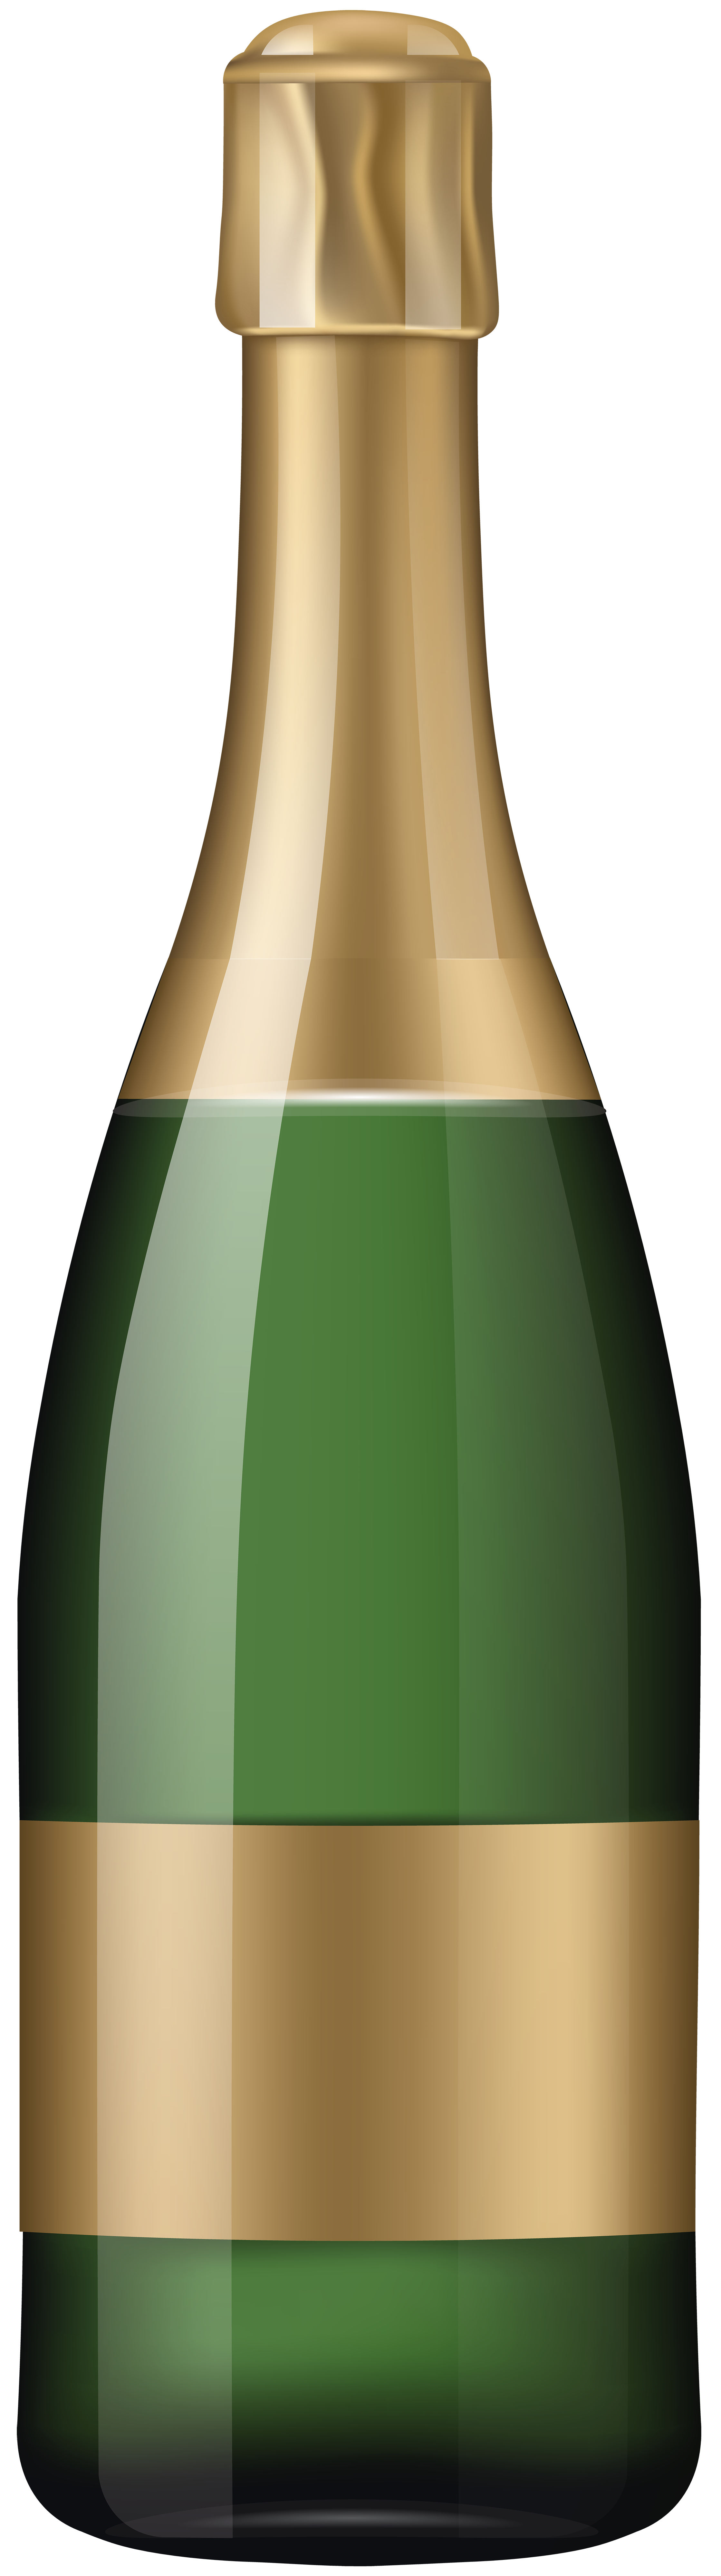 Clip art image gallery. Bottle of champagne png